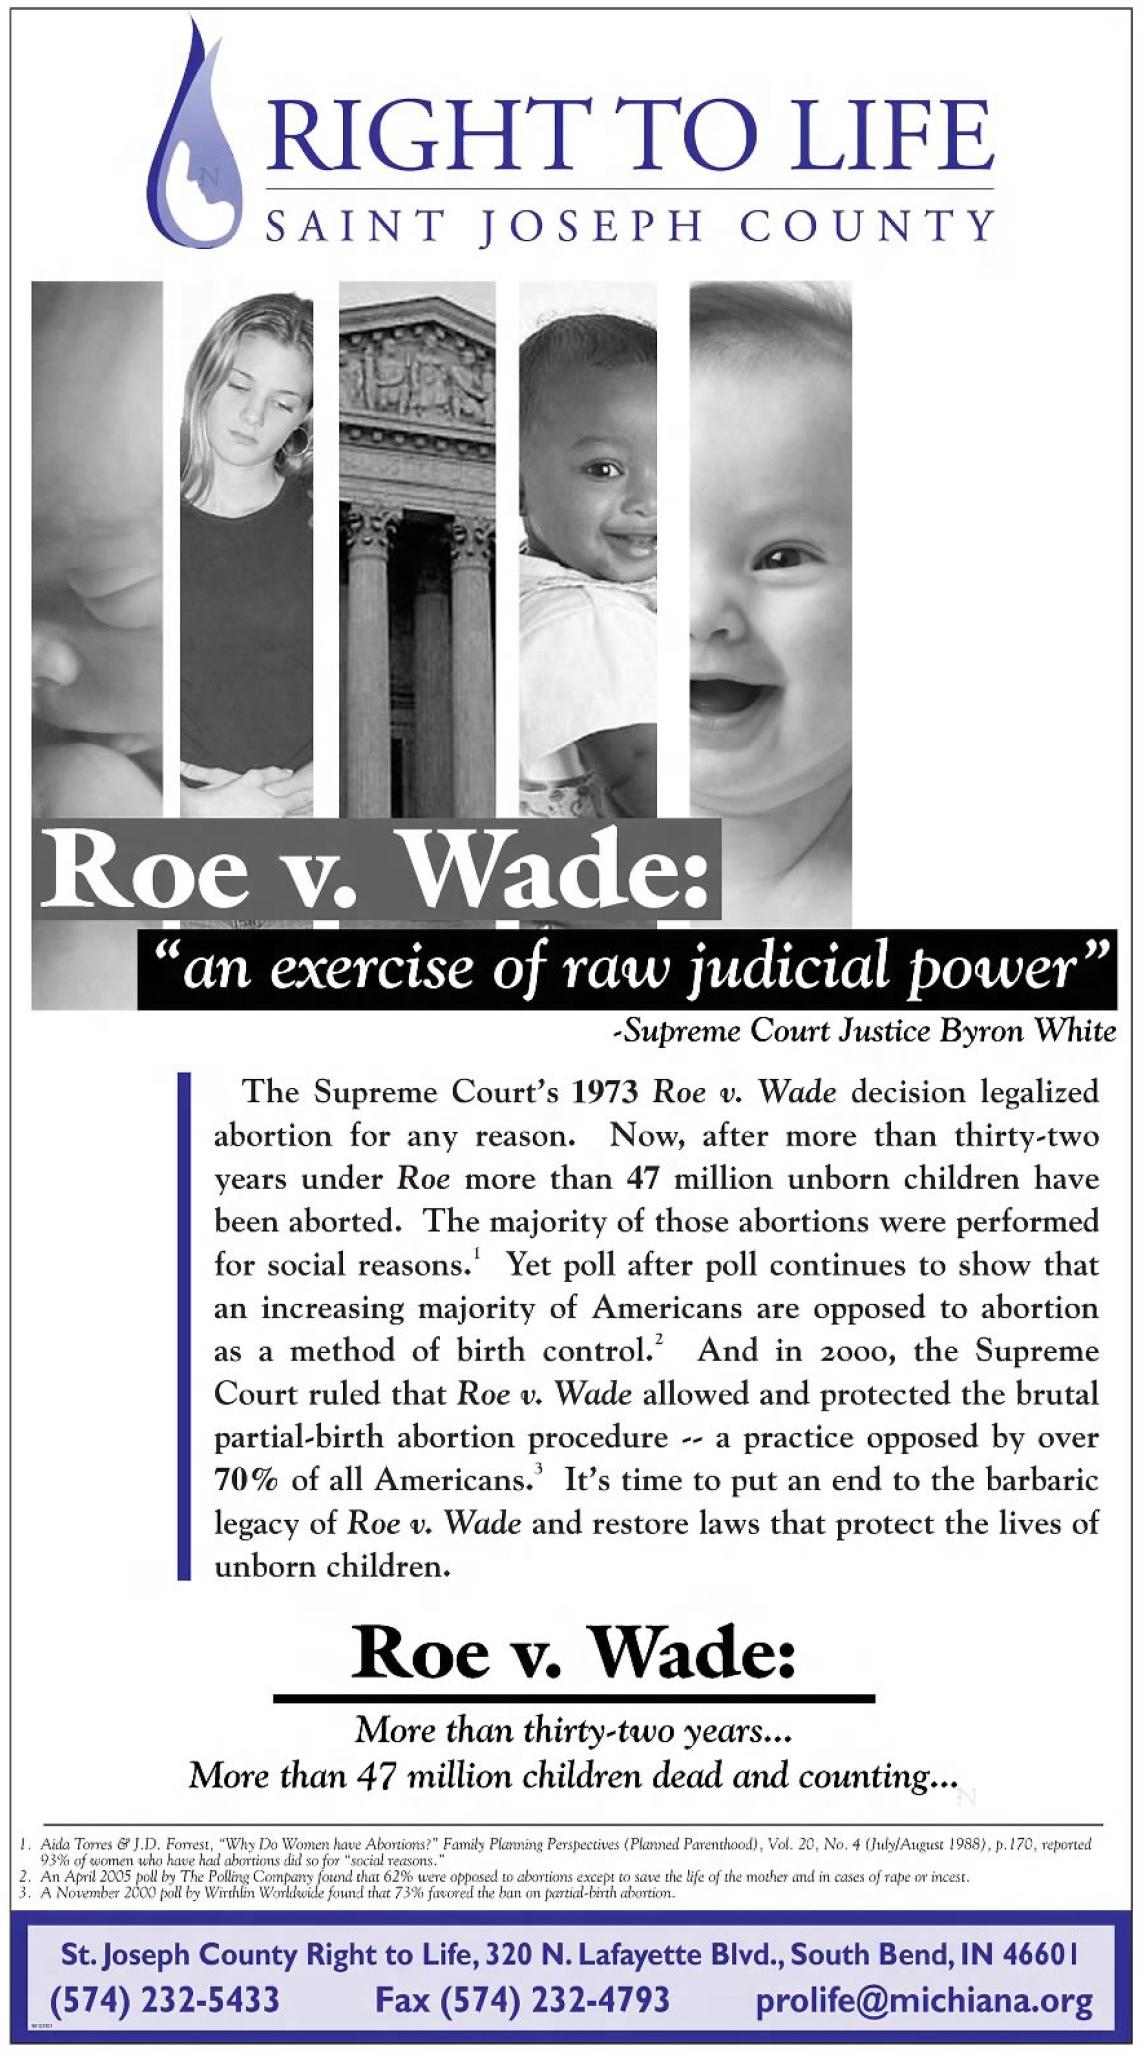 Sen. Tammy Duckworth, a Democrat, is asking Republicans to reconsider support for Barrett after this 2006 newspaper ad from an anti-abortion-rights group surfaced with Barrett's name attached.